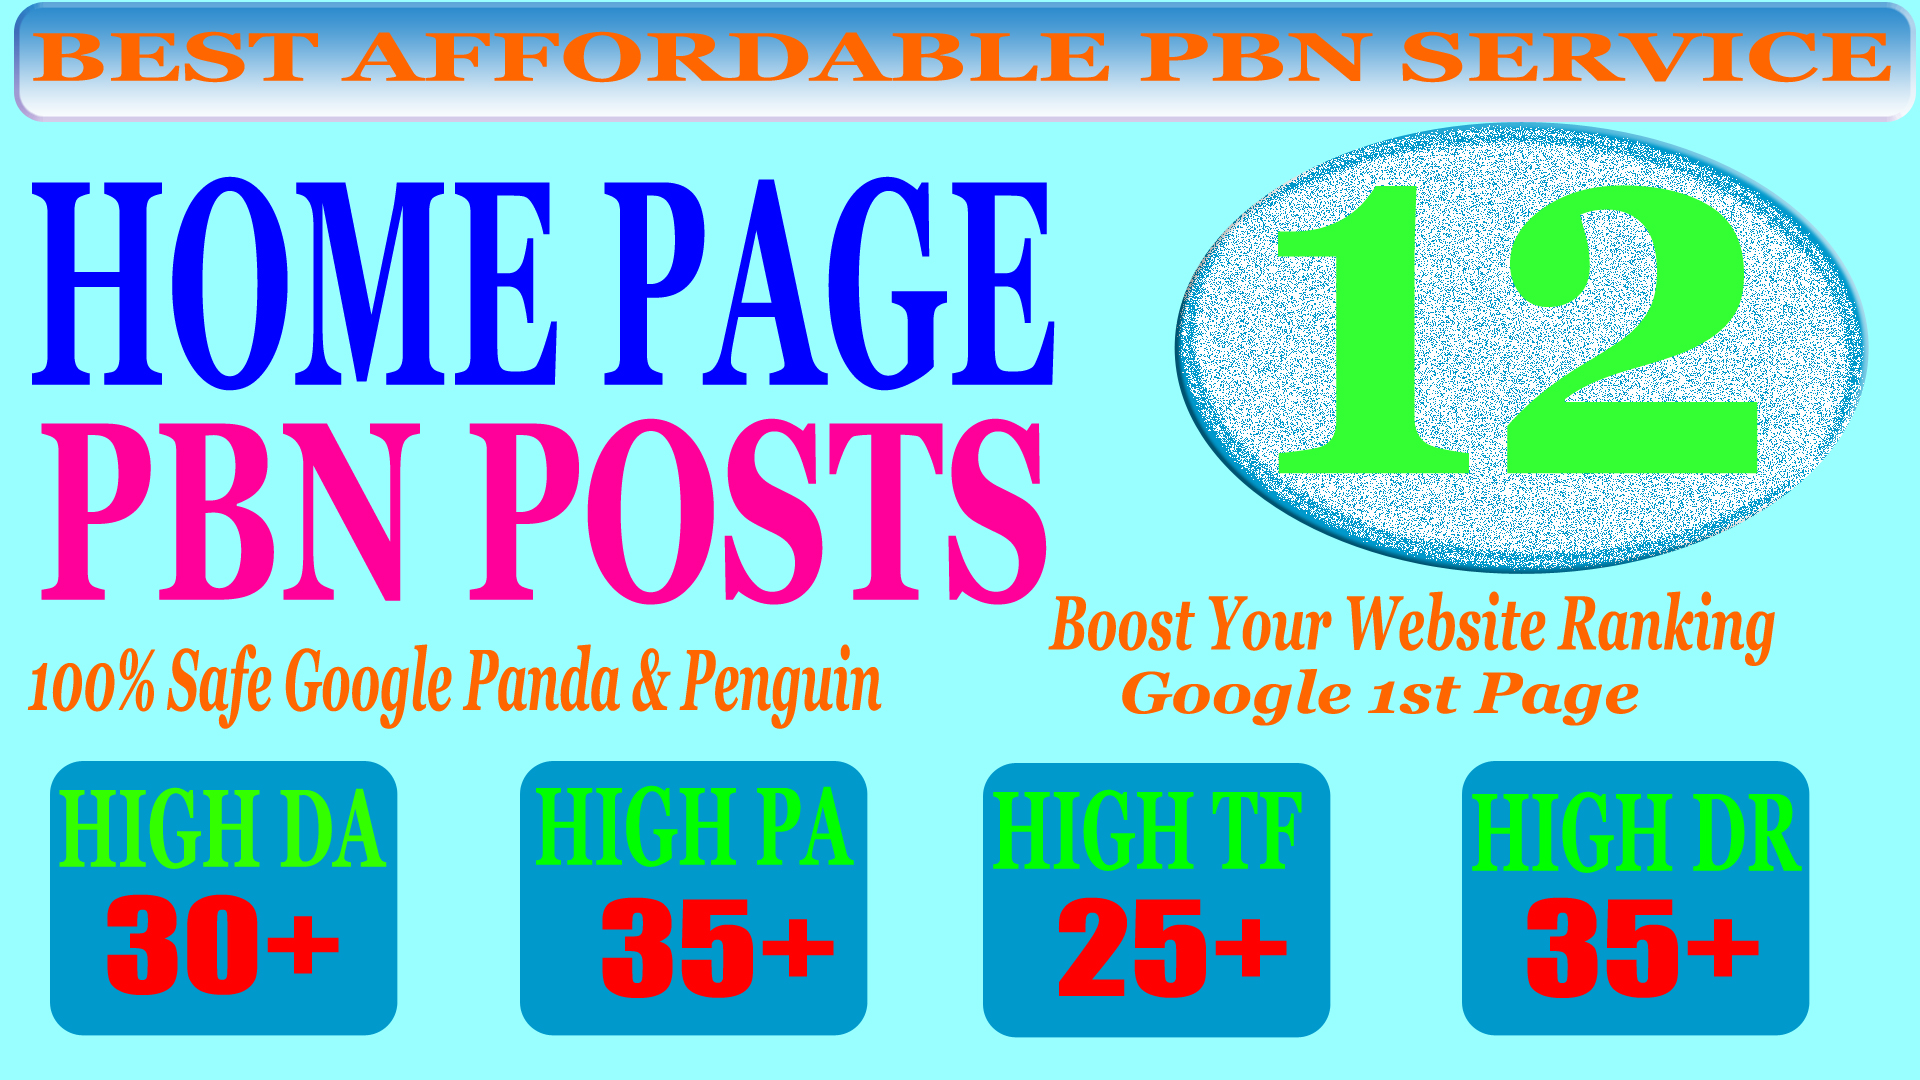 12 Homepage PBN Post with High DA PA CF TF 25+ Moz Authority Expired domain Backlinks